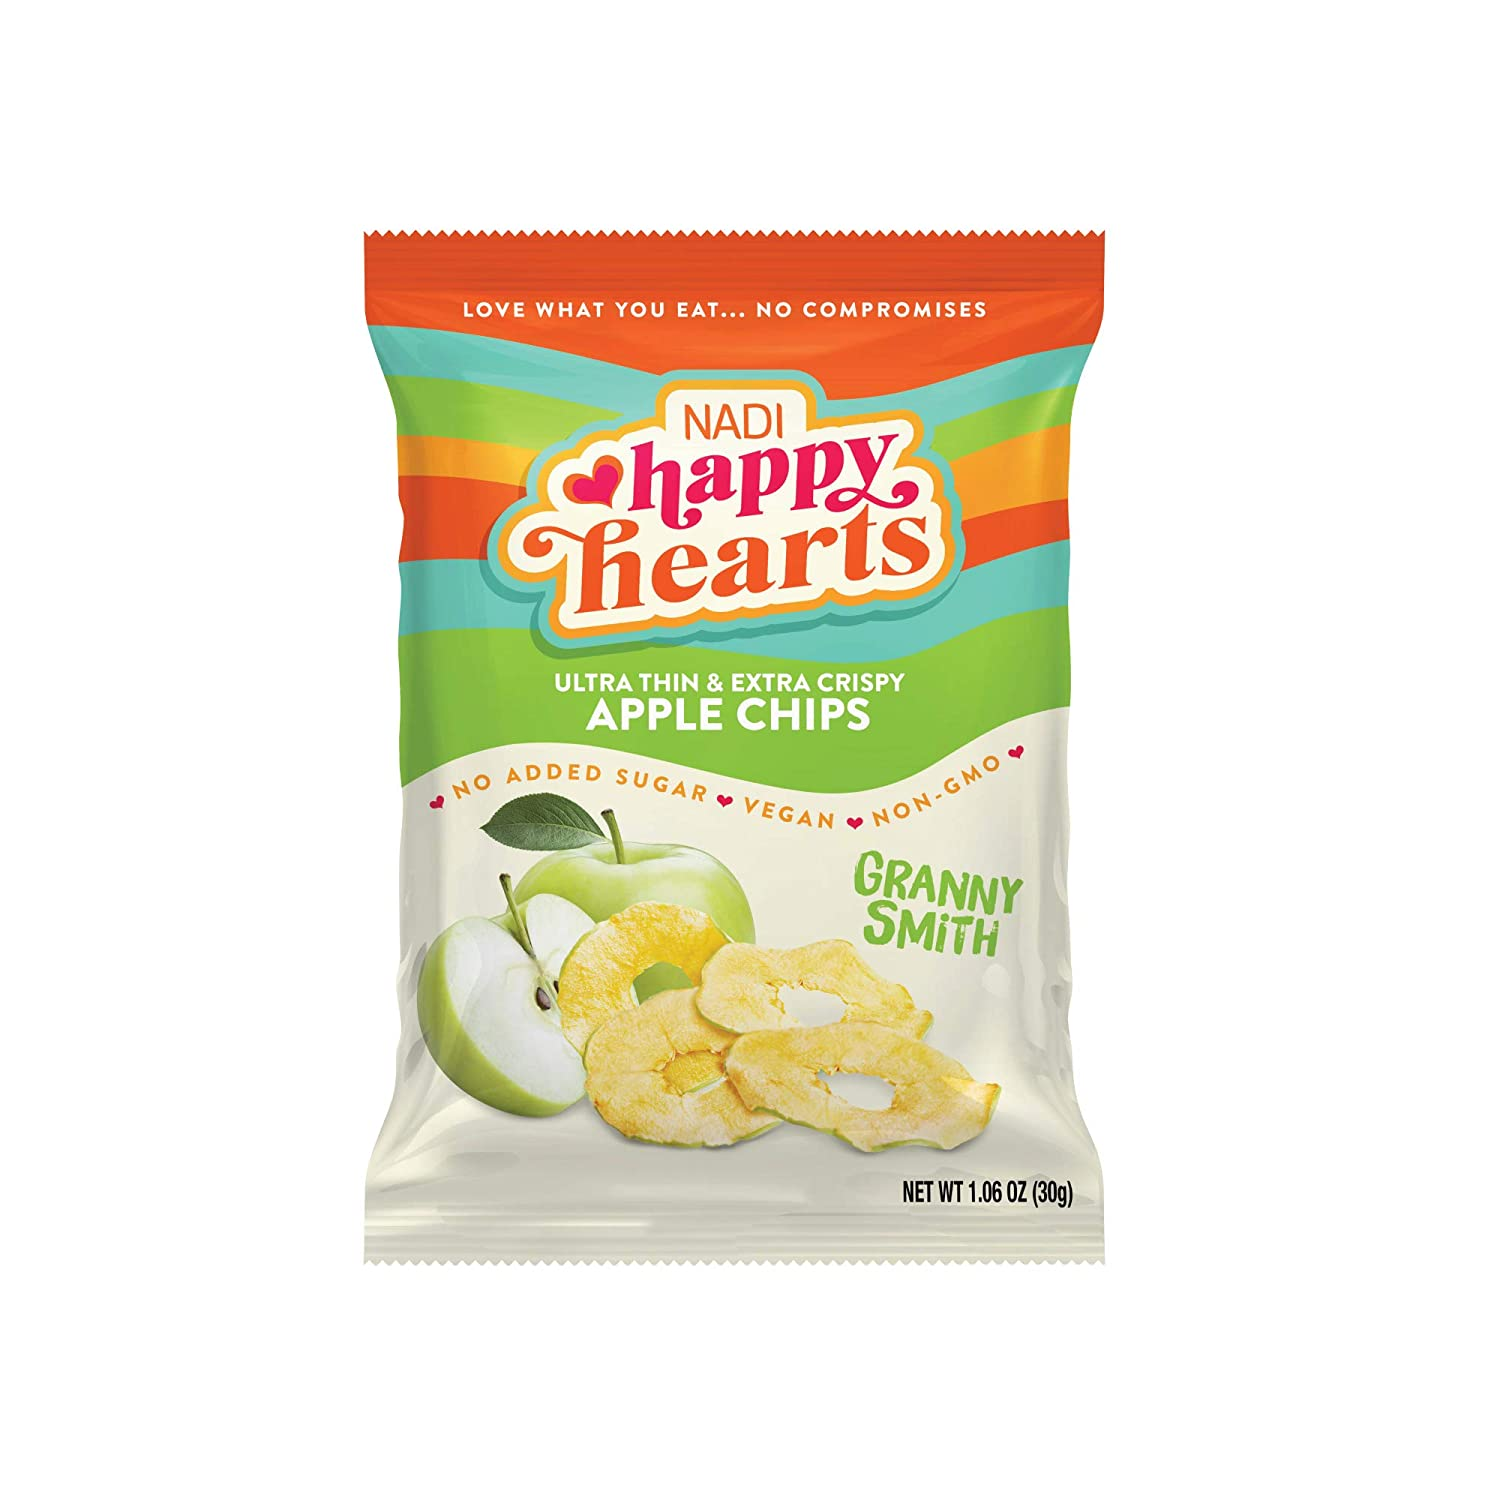 NADI Happy Hearts Dried Apple Chips - Thin Dried Apple Slices - Healthy Snacks for Kids & Adults - Natural Fruit Chips - Vegan Friendly, Gluten Free, Paleo Snack - (Granny Smith, 6 Pack)